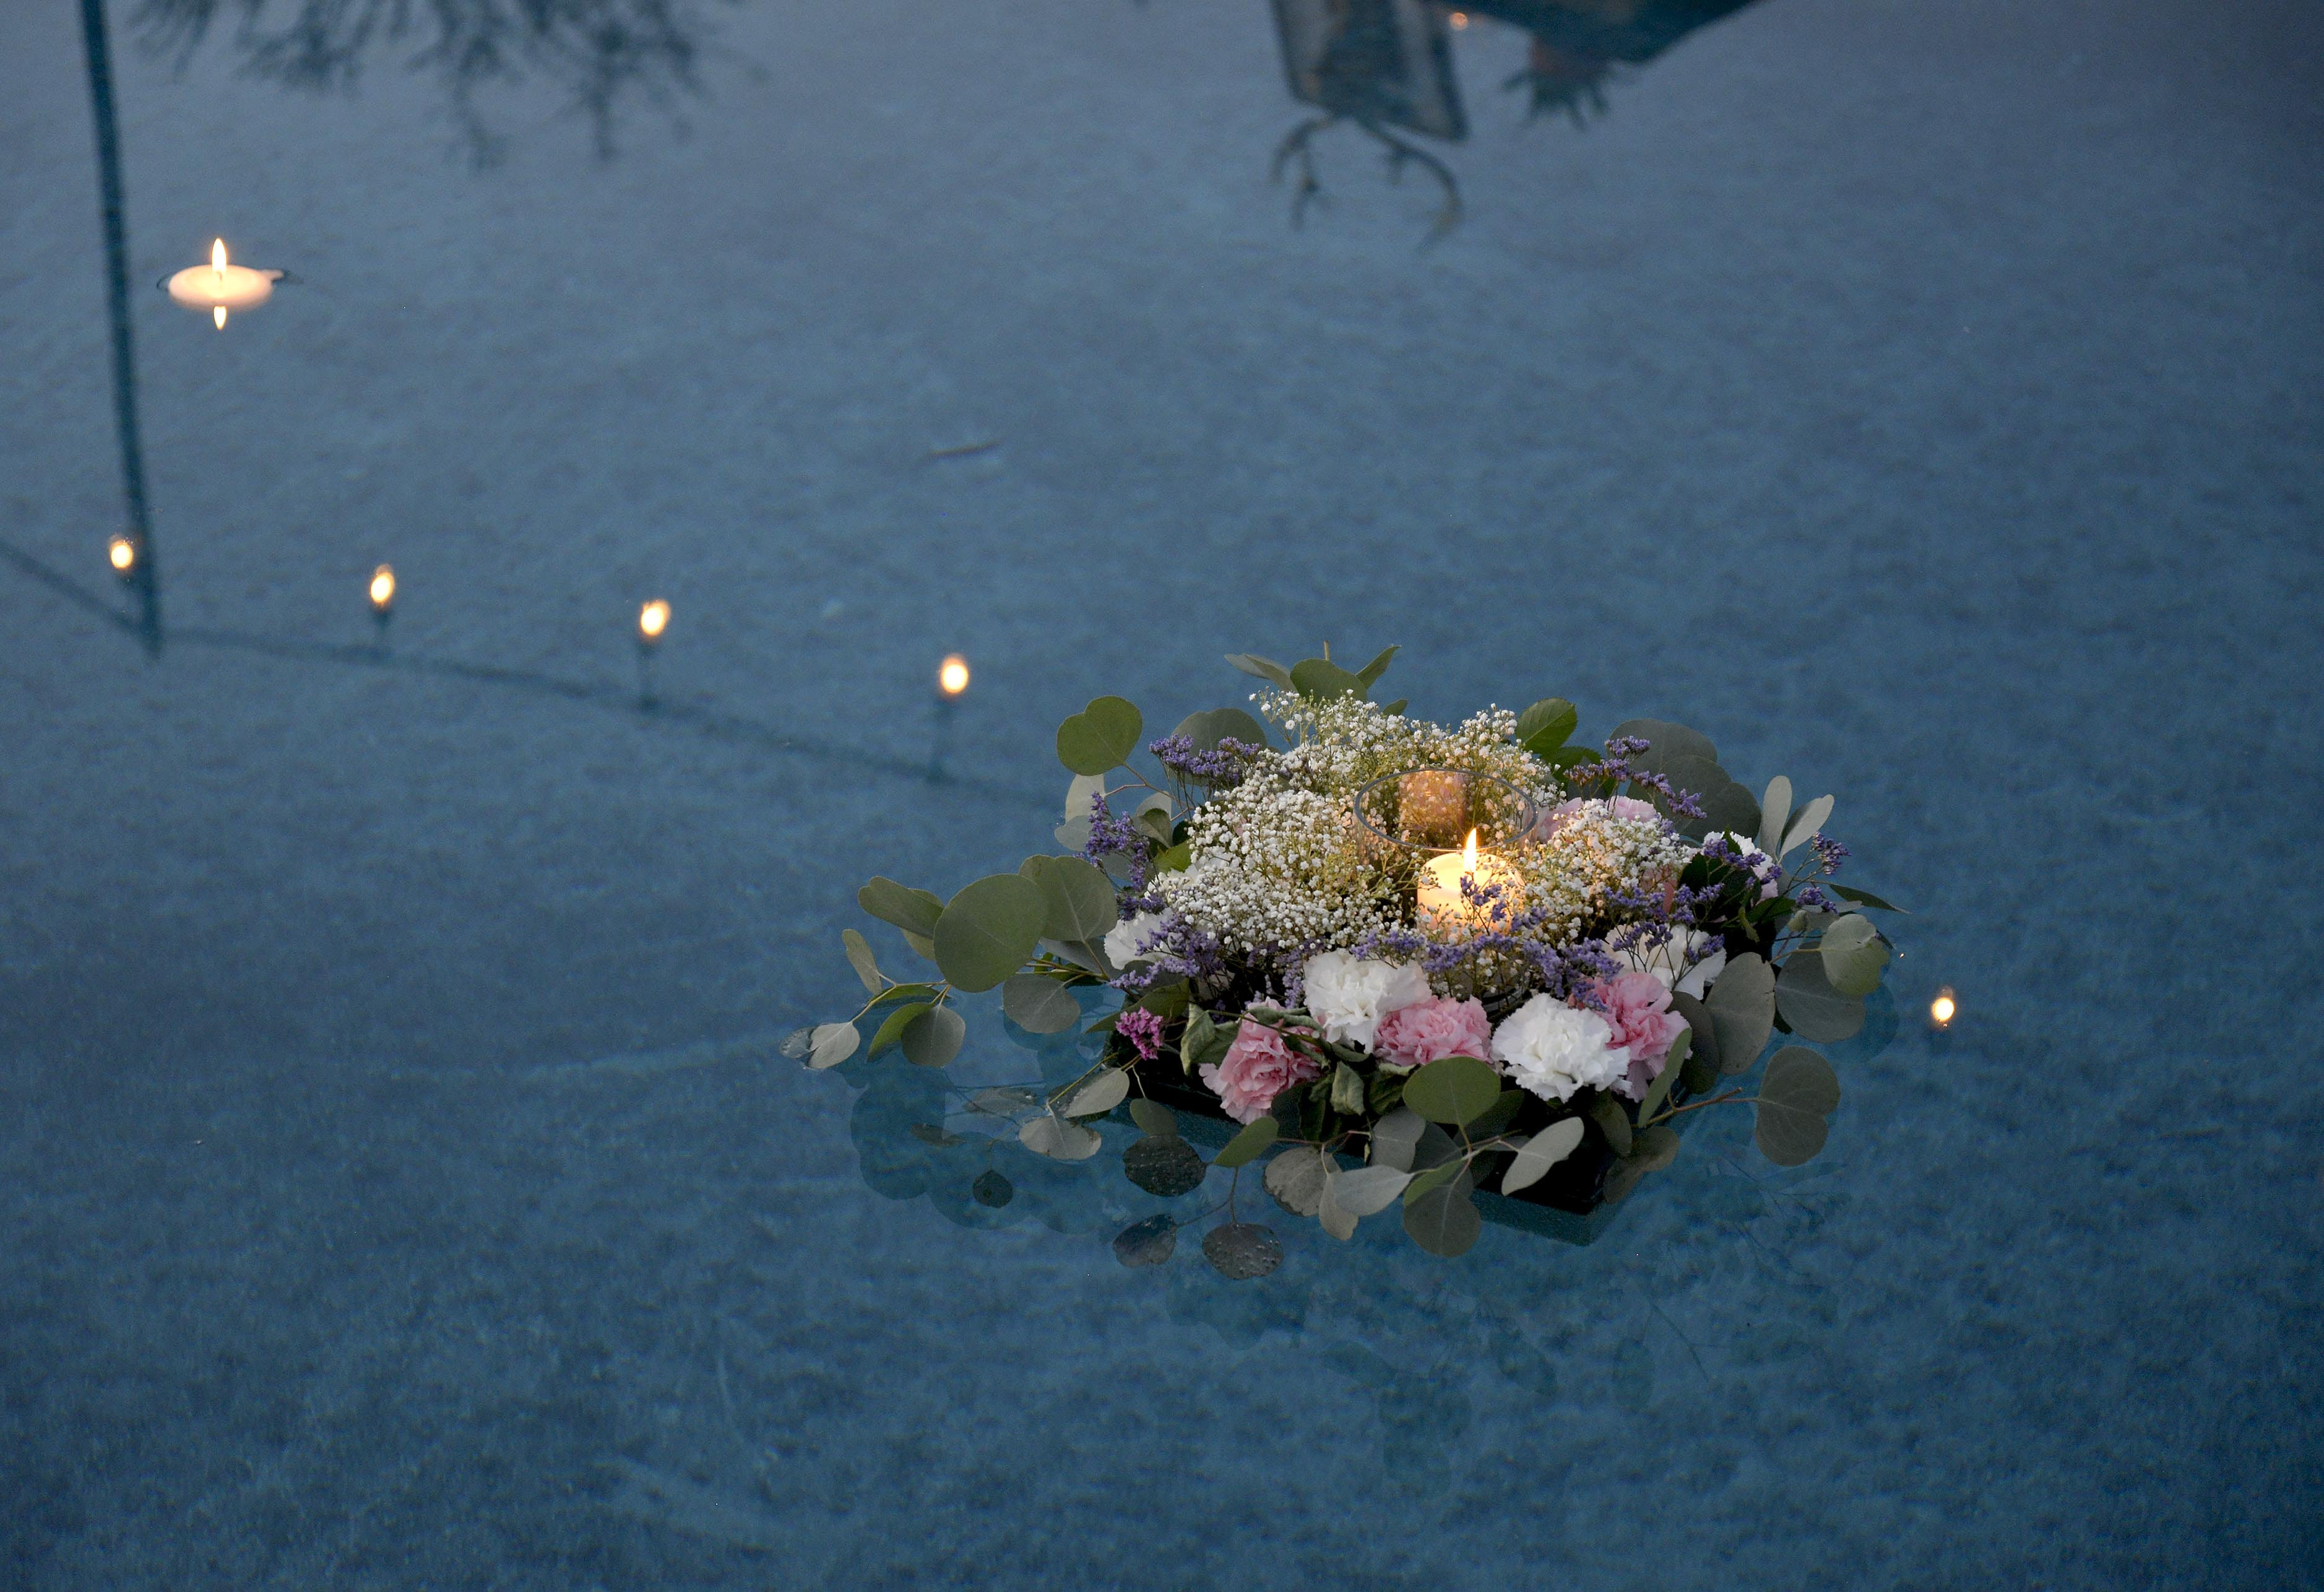 A box with a burning candle surrounded with various flowers and leaves floating on the surface of water